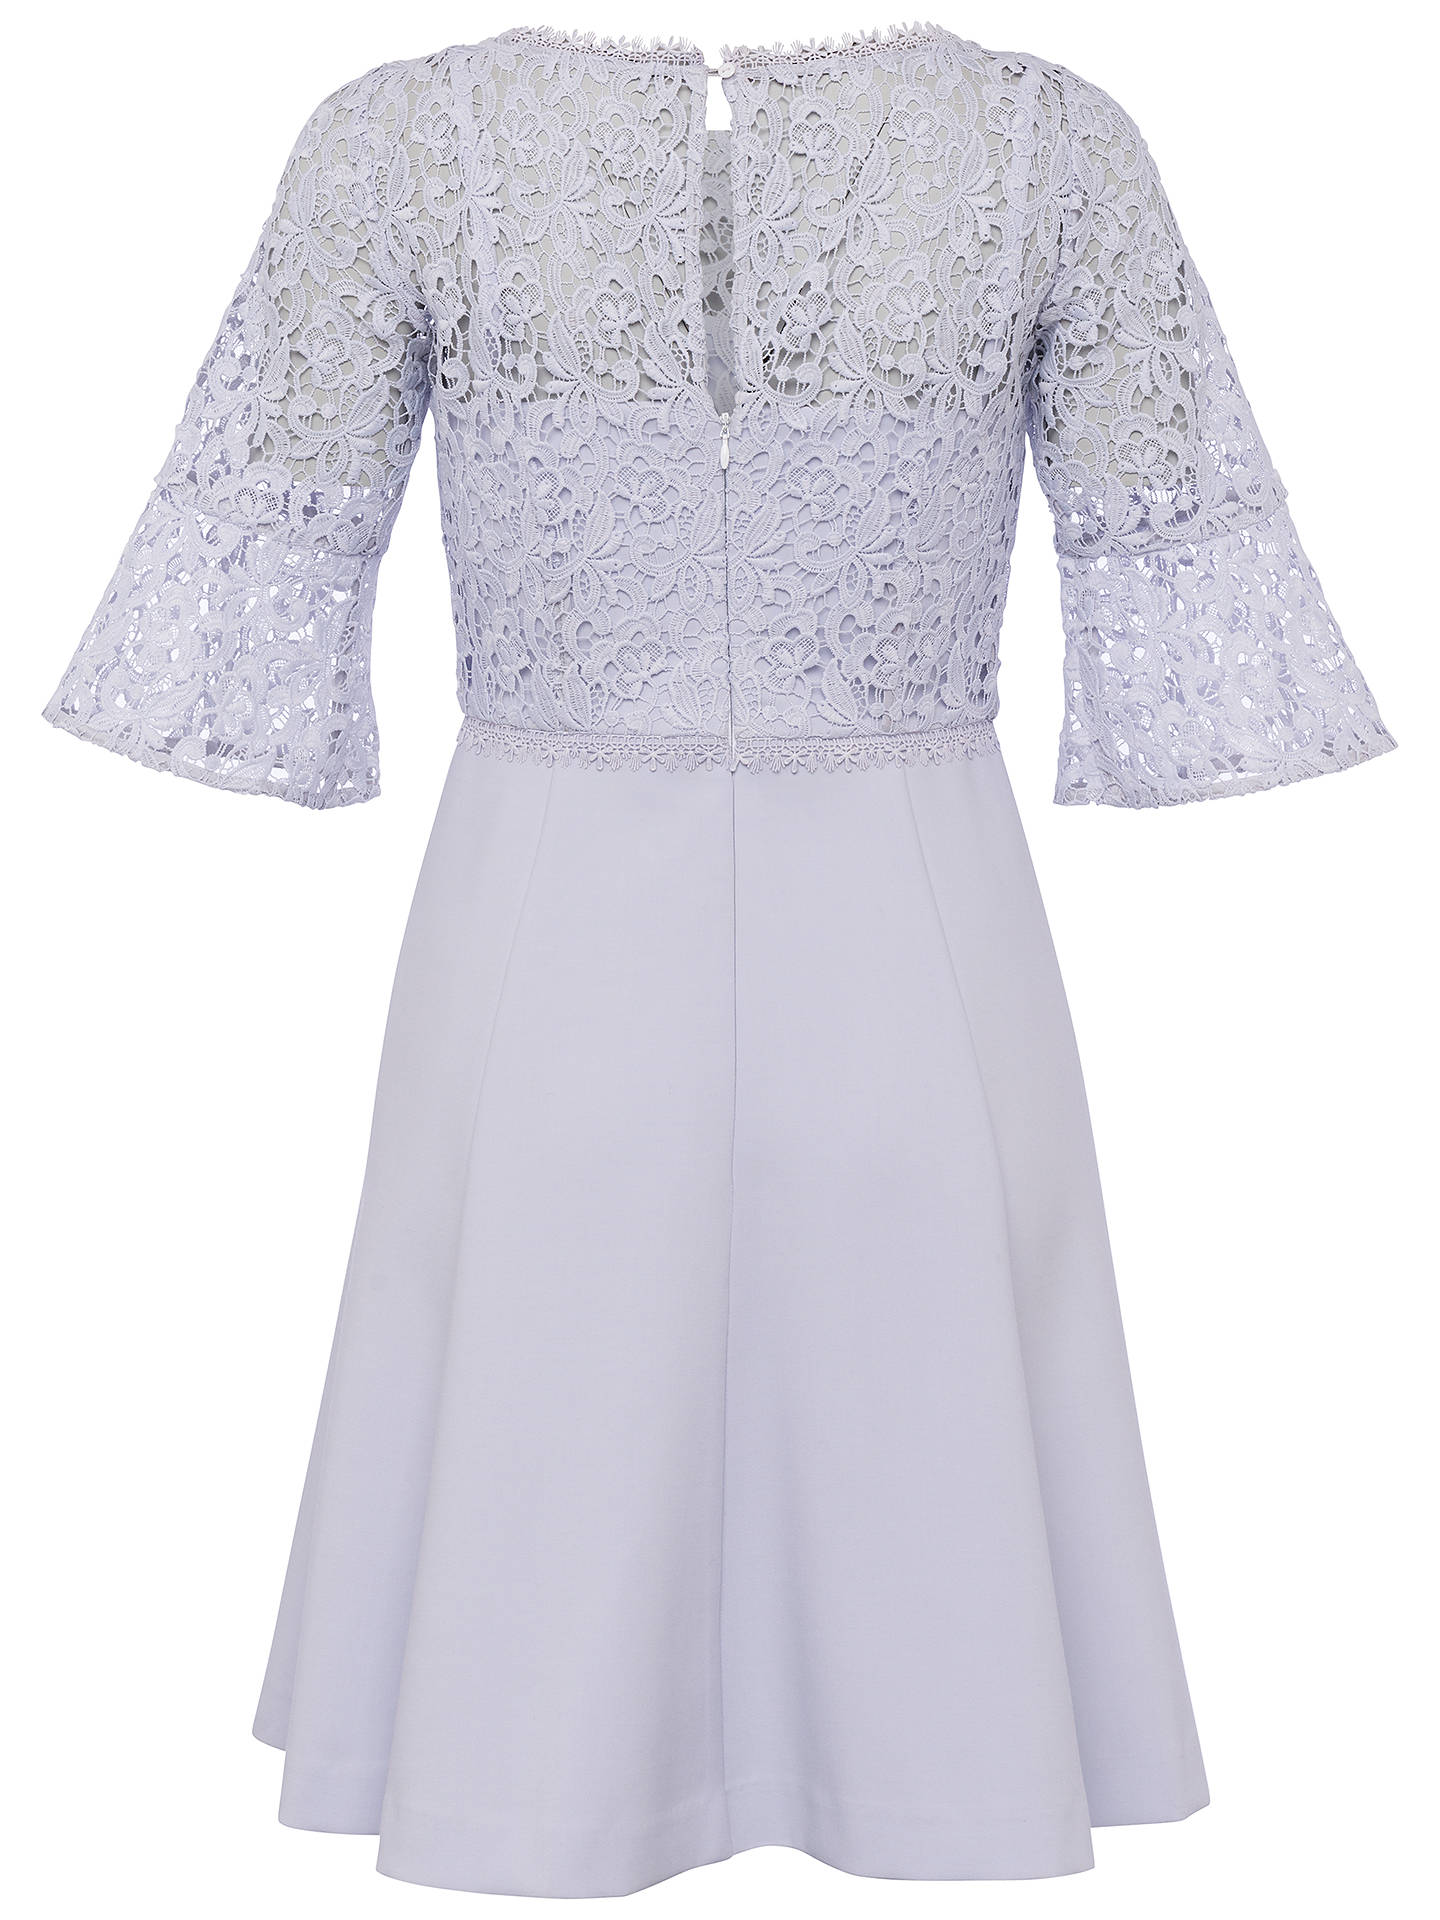 304a8095ede3 Buy French Connection Whisper Ruth Lace Dress